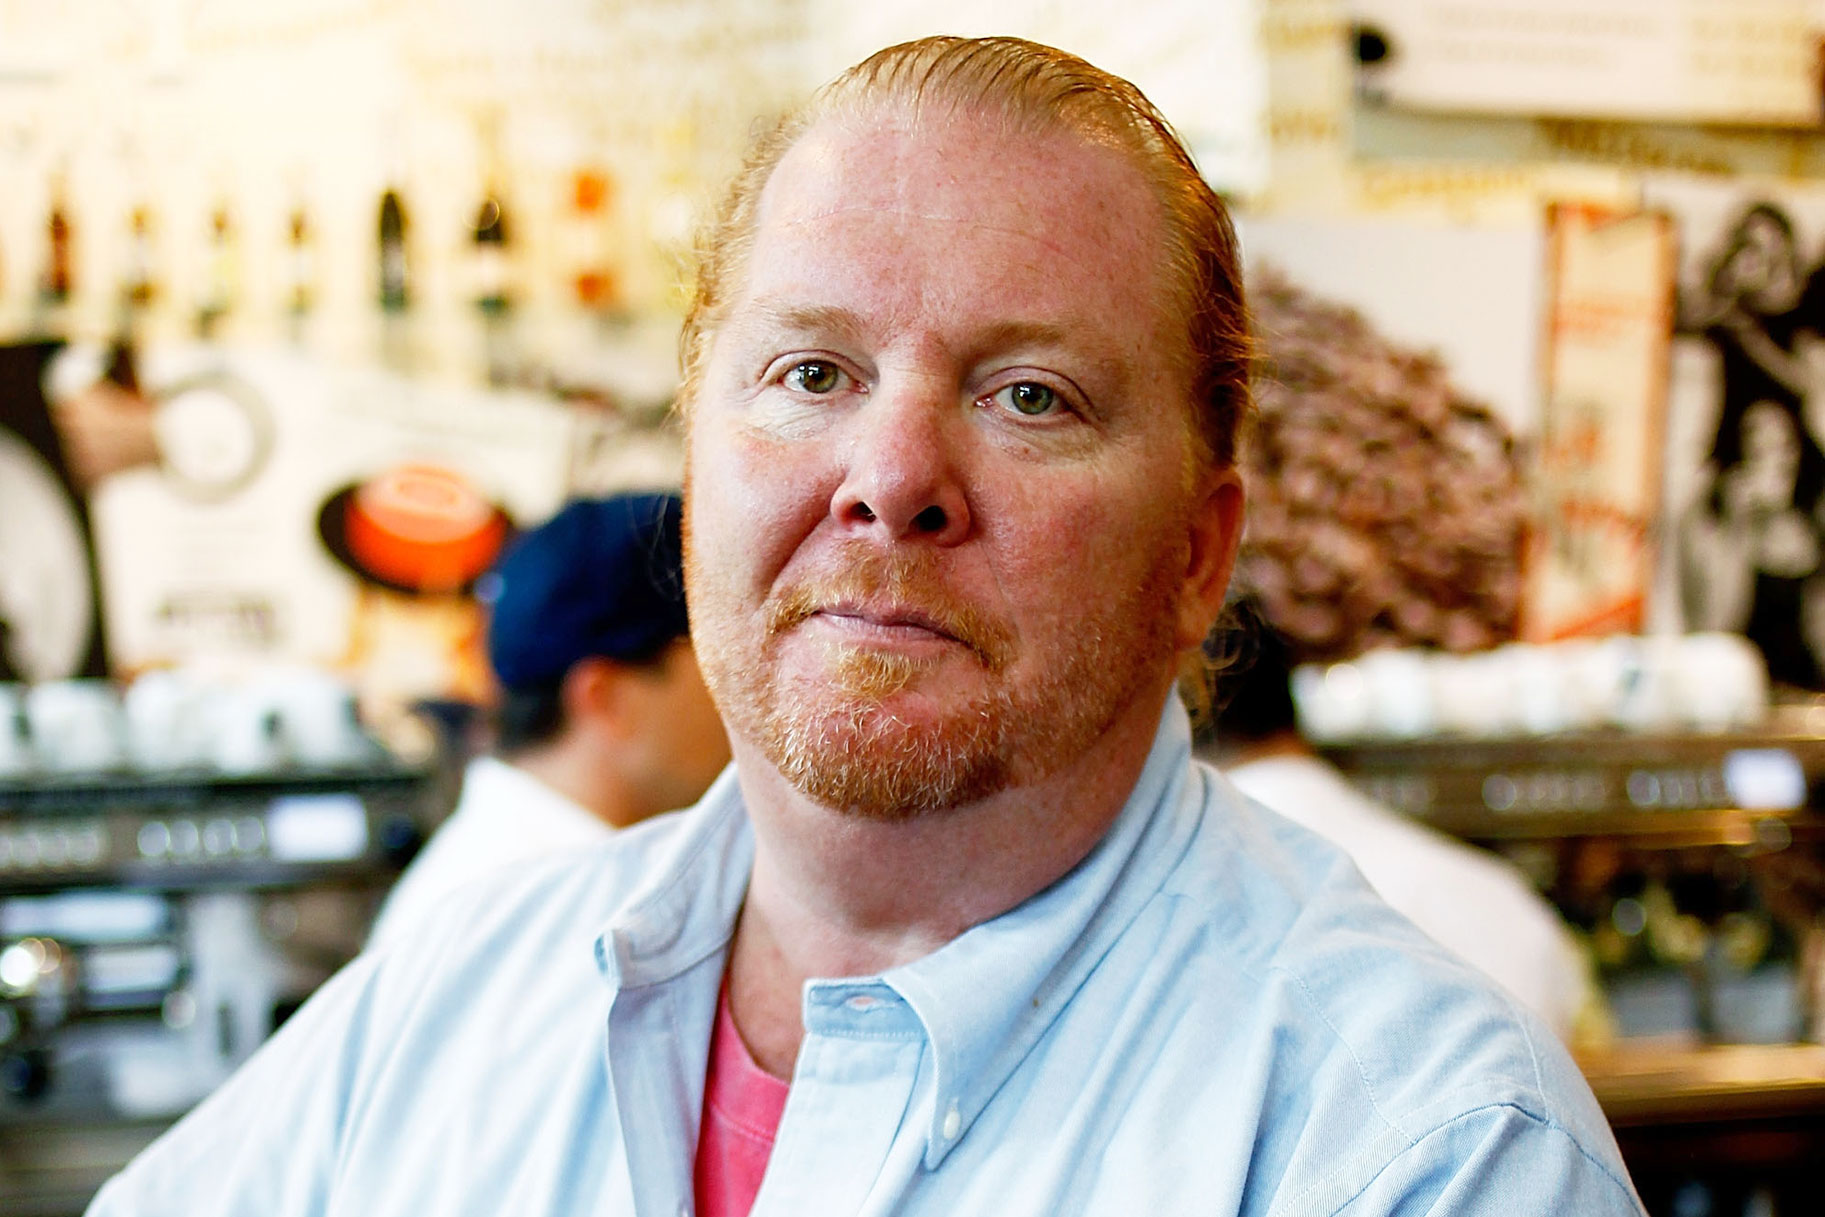 Celeb Chef Mario Batali Pleads Not Guilty After Being Accused Of Groping Woman